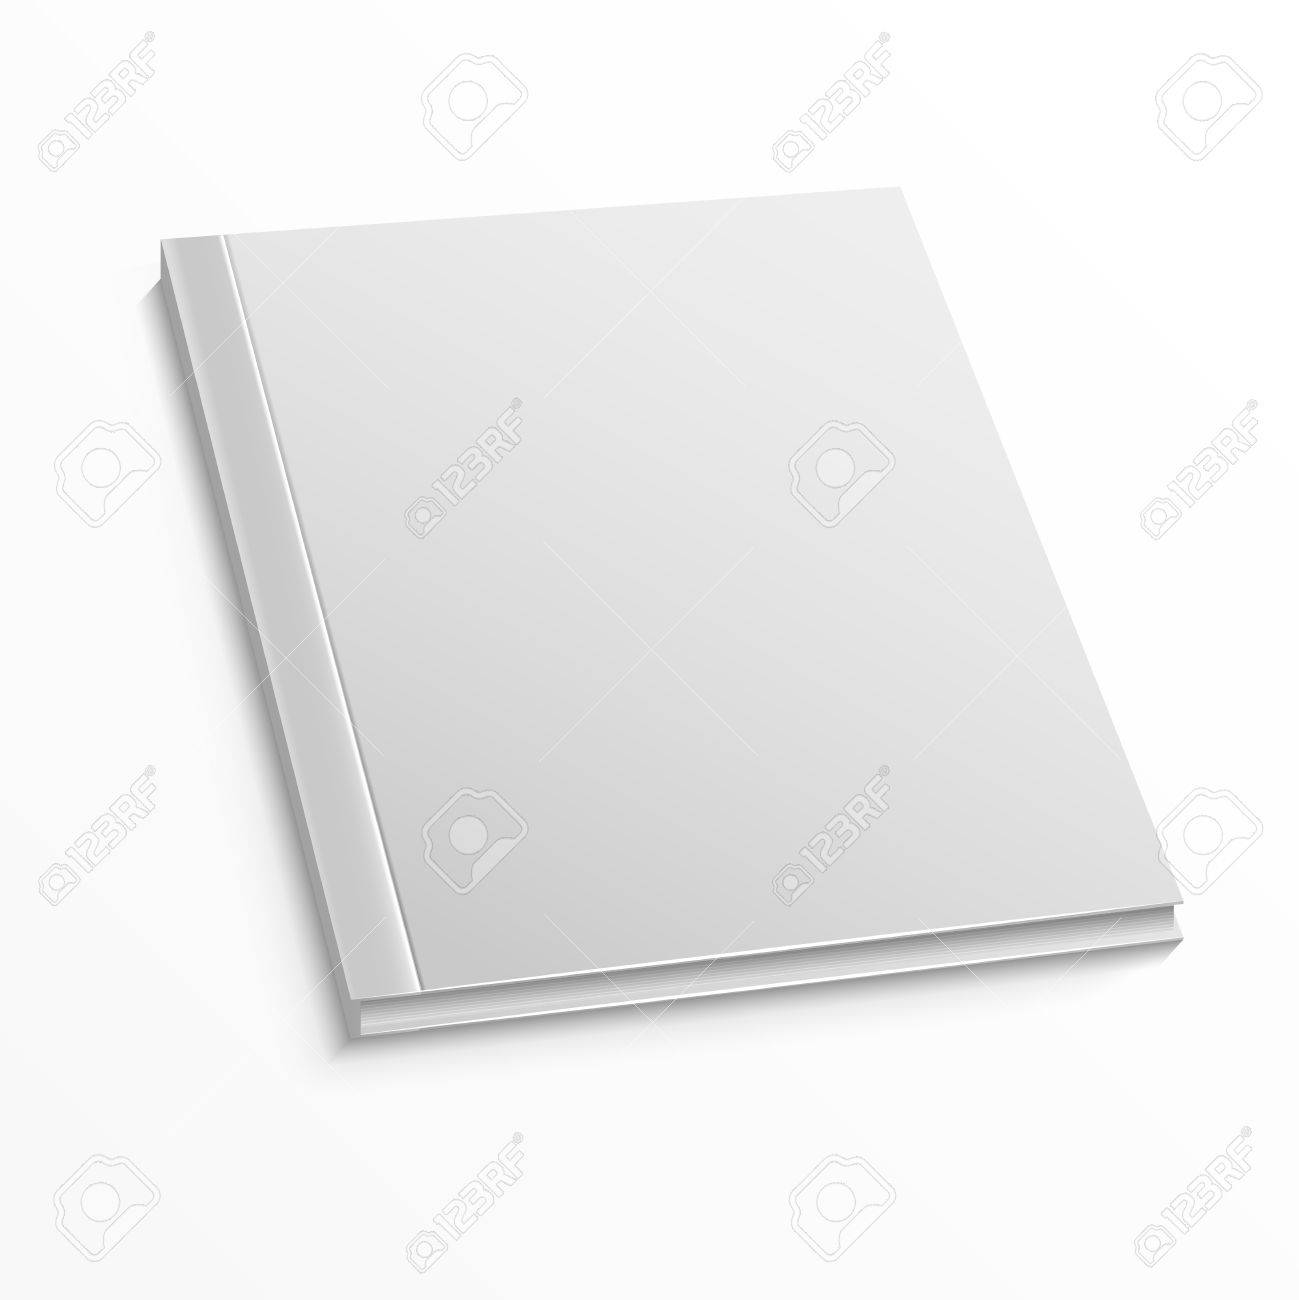 blank magazine cover template on white background mockup for